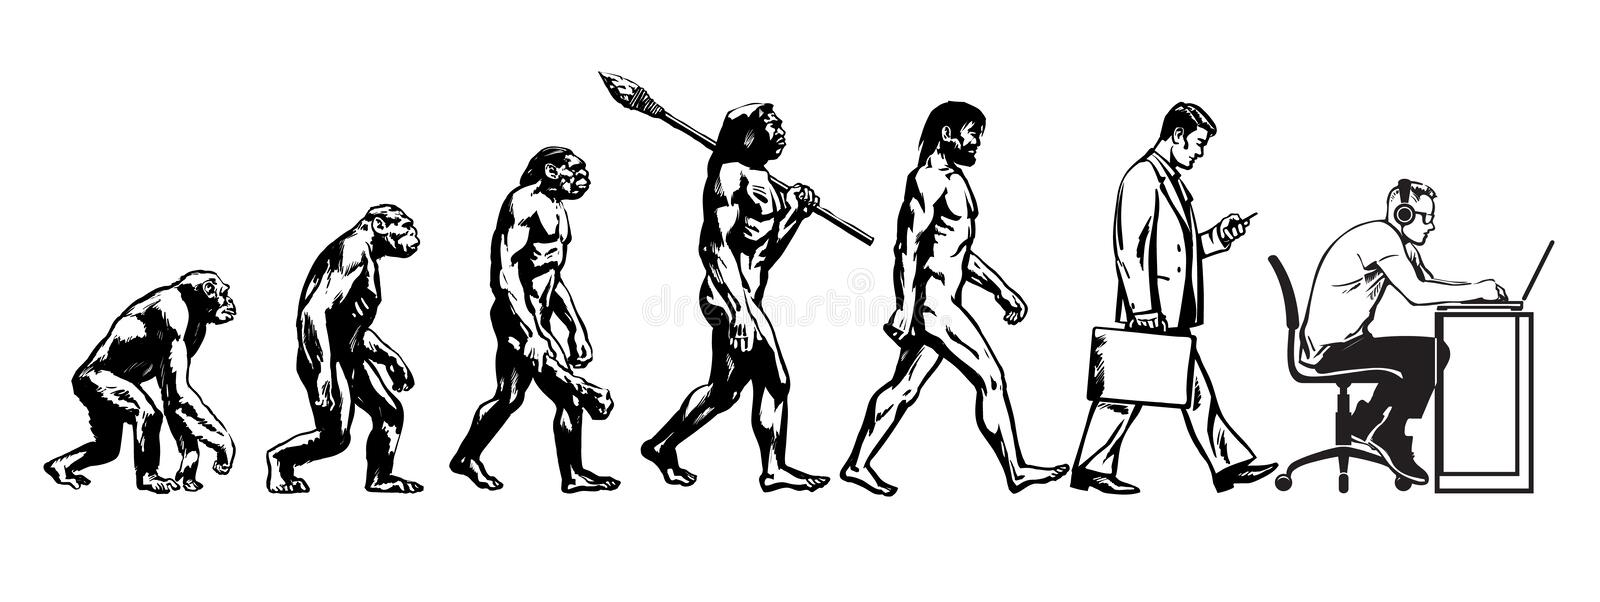 Teori av evolution av mannen vektor illustrationer